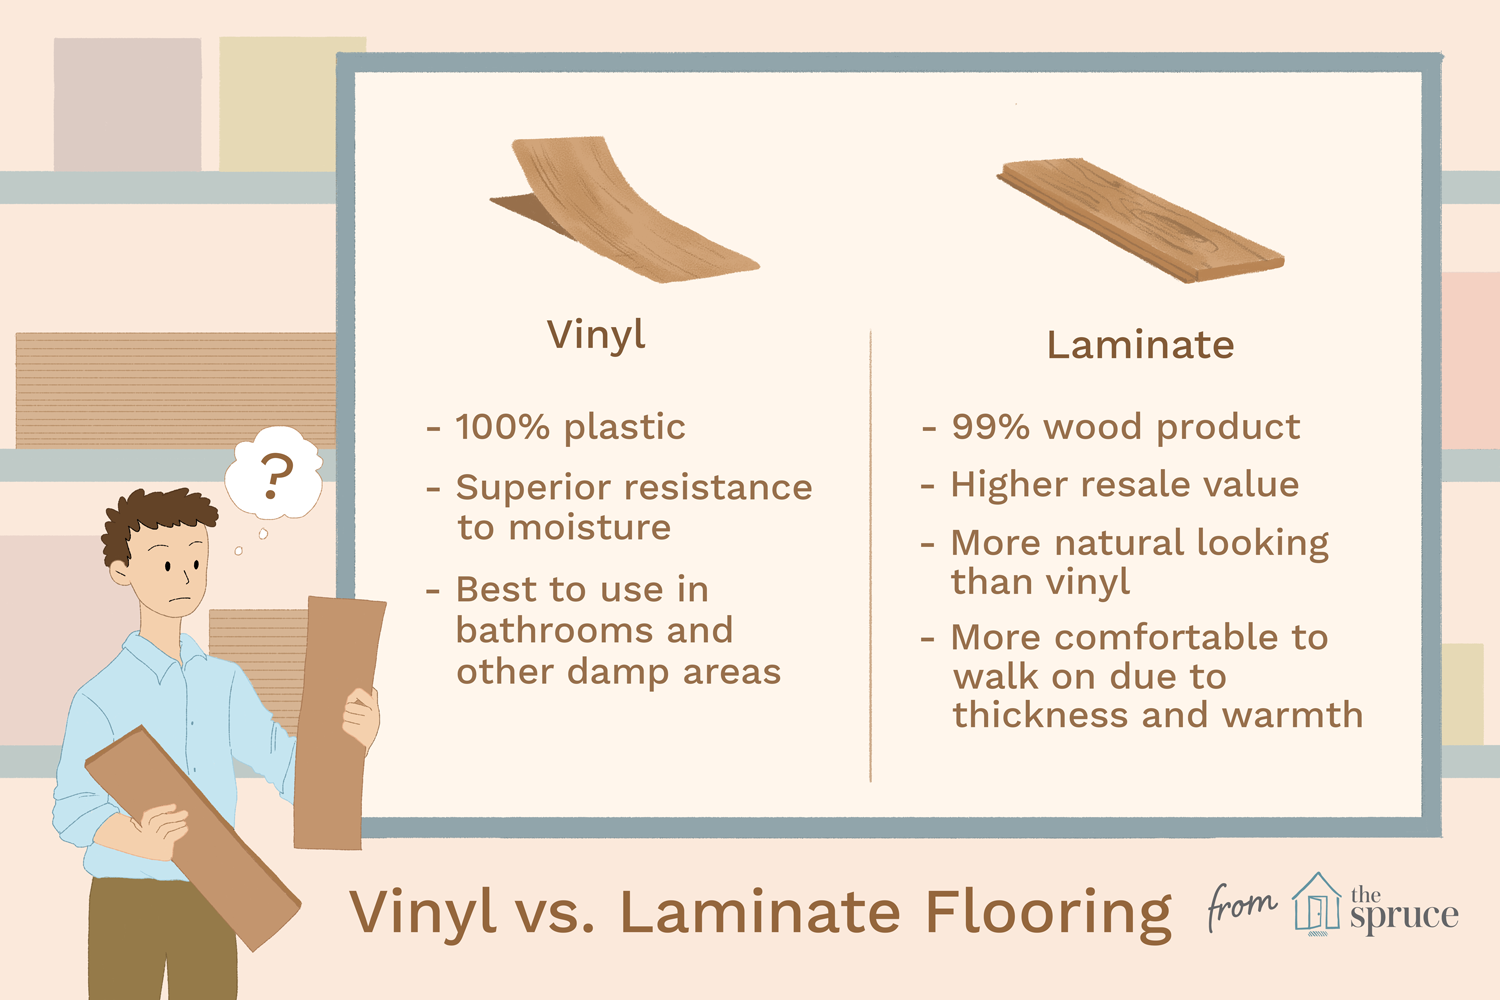 Vinyl vs. Laminate Flooring Comparison Guide: What's the Difference?